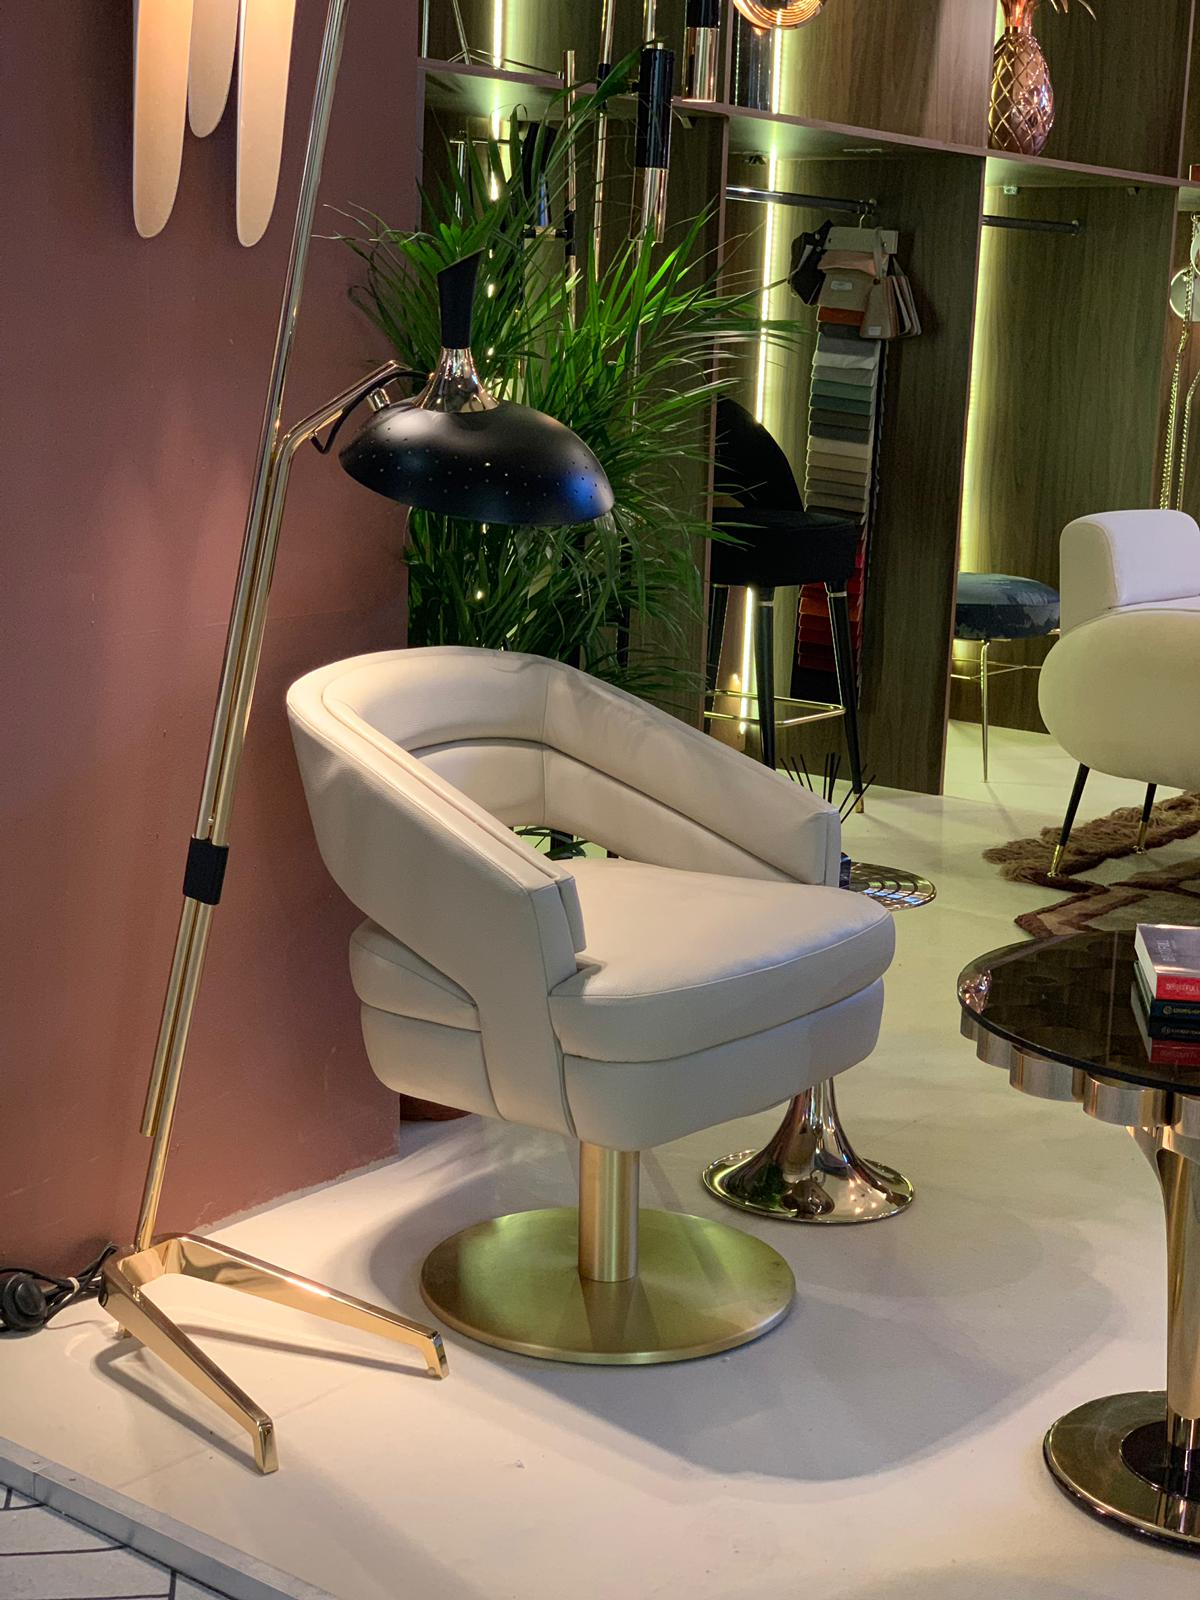 Almost Coming To Na End, See What You Missed At Maison Et Objet 2019 7 Maison Et Objet 2019 Almost Coming To An End, See What You Missed At Maison Et Objet 2019 Almost Coming To Na End See What You Missed At Maison Et Objet 2019 7